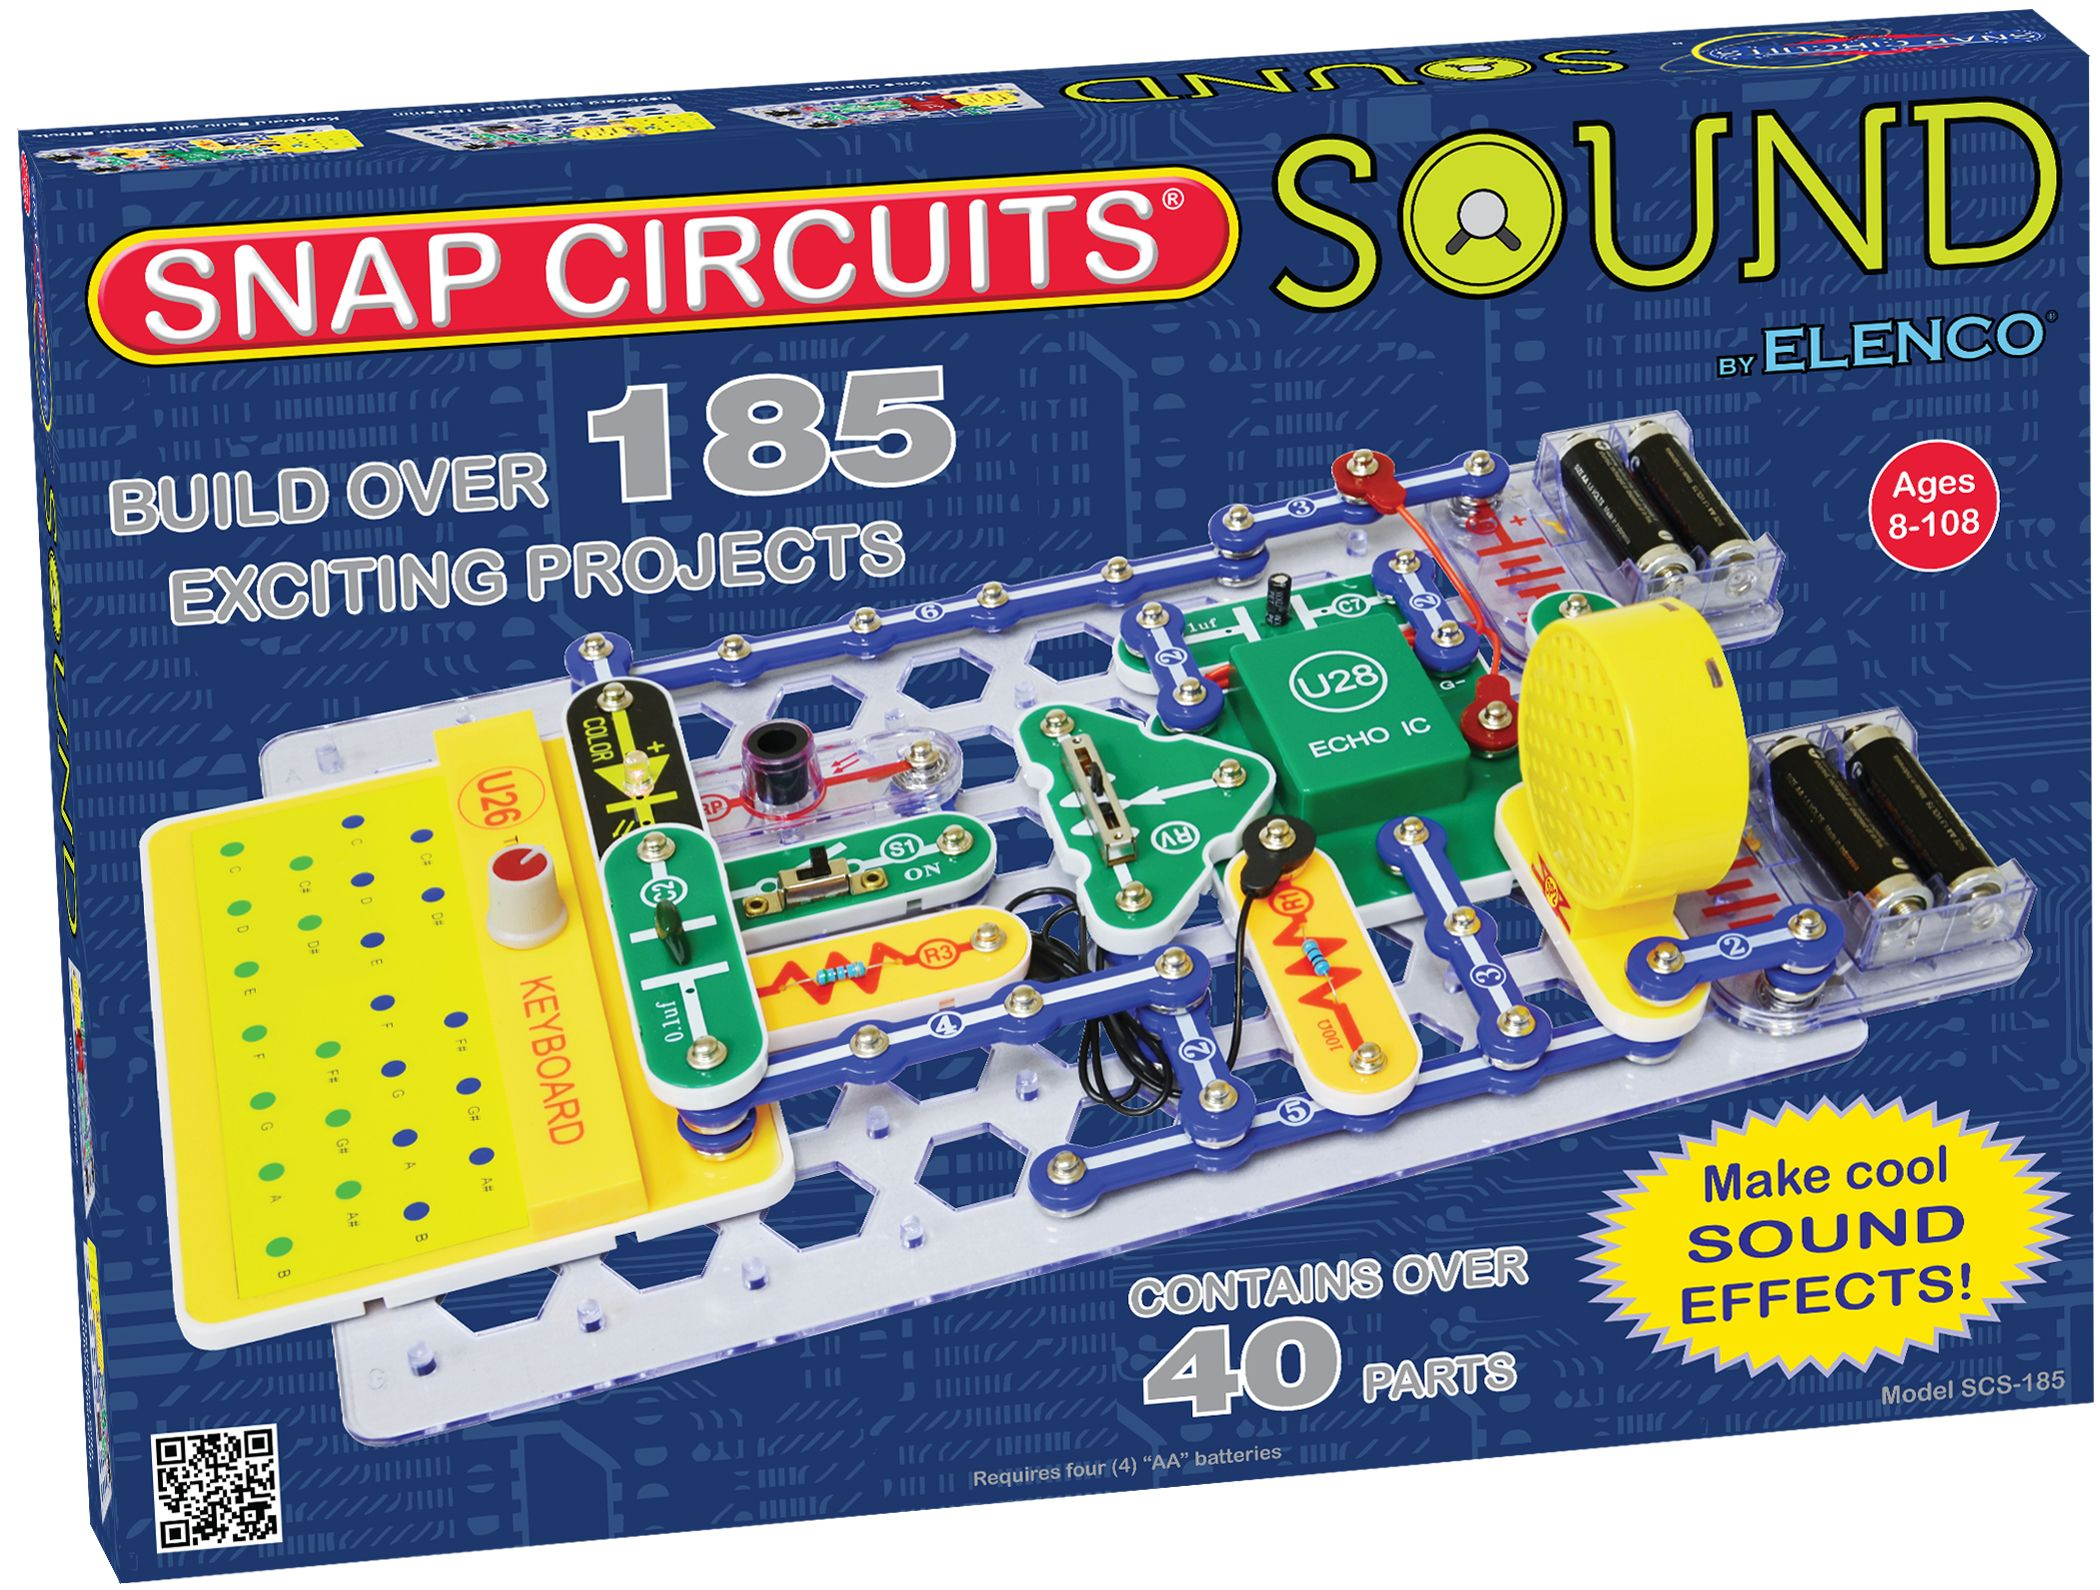 Snap Circuits Sound Kit Complete Wiring Diagrams Electronic Circuit Model Scs 185 Educational Rh Pinterest Com Replacement Parts